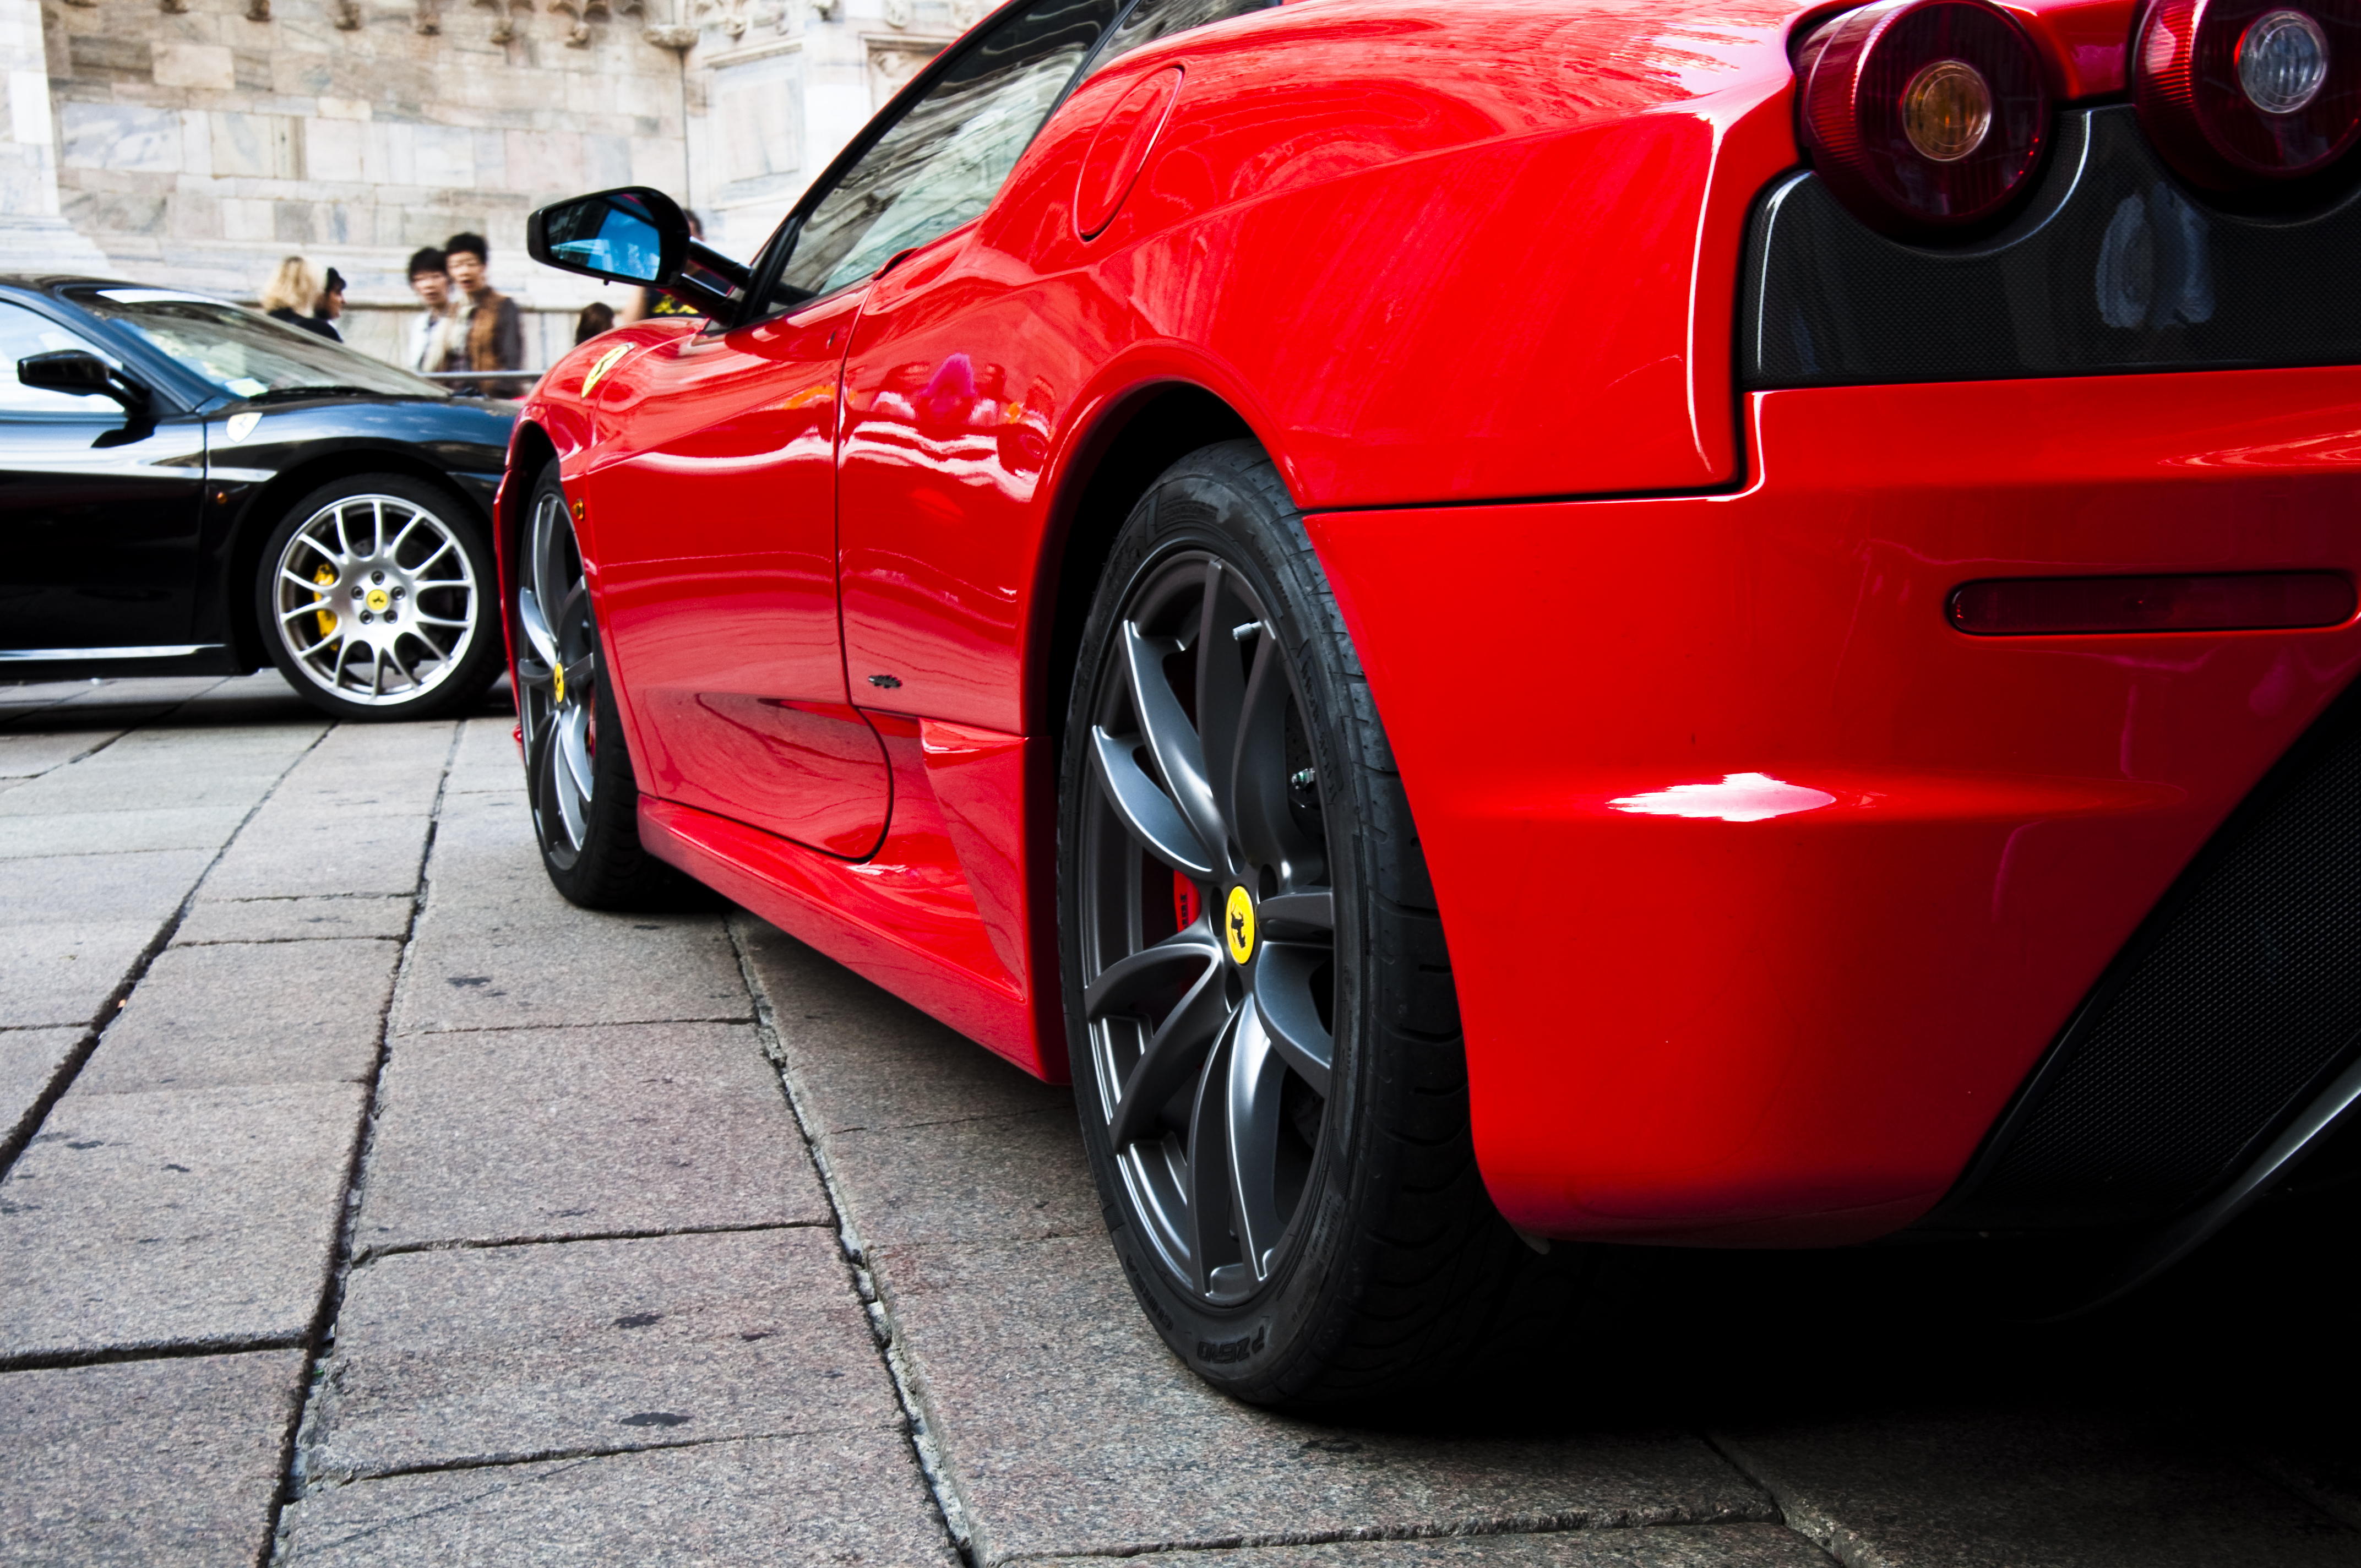 red and black ferrari - photo #25